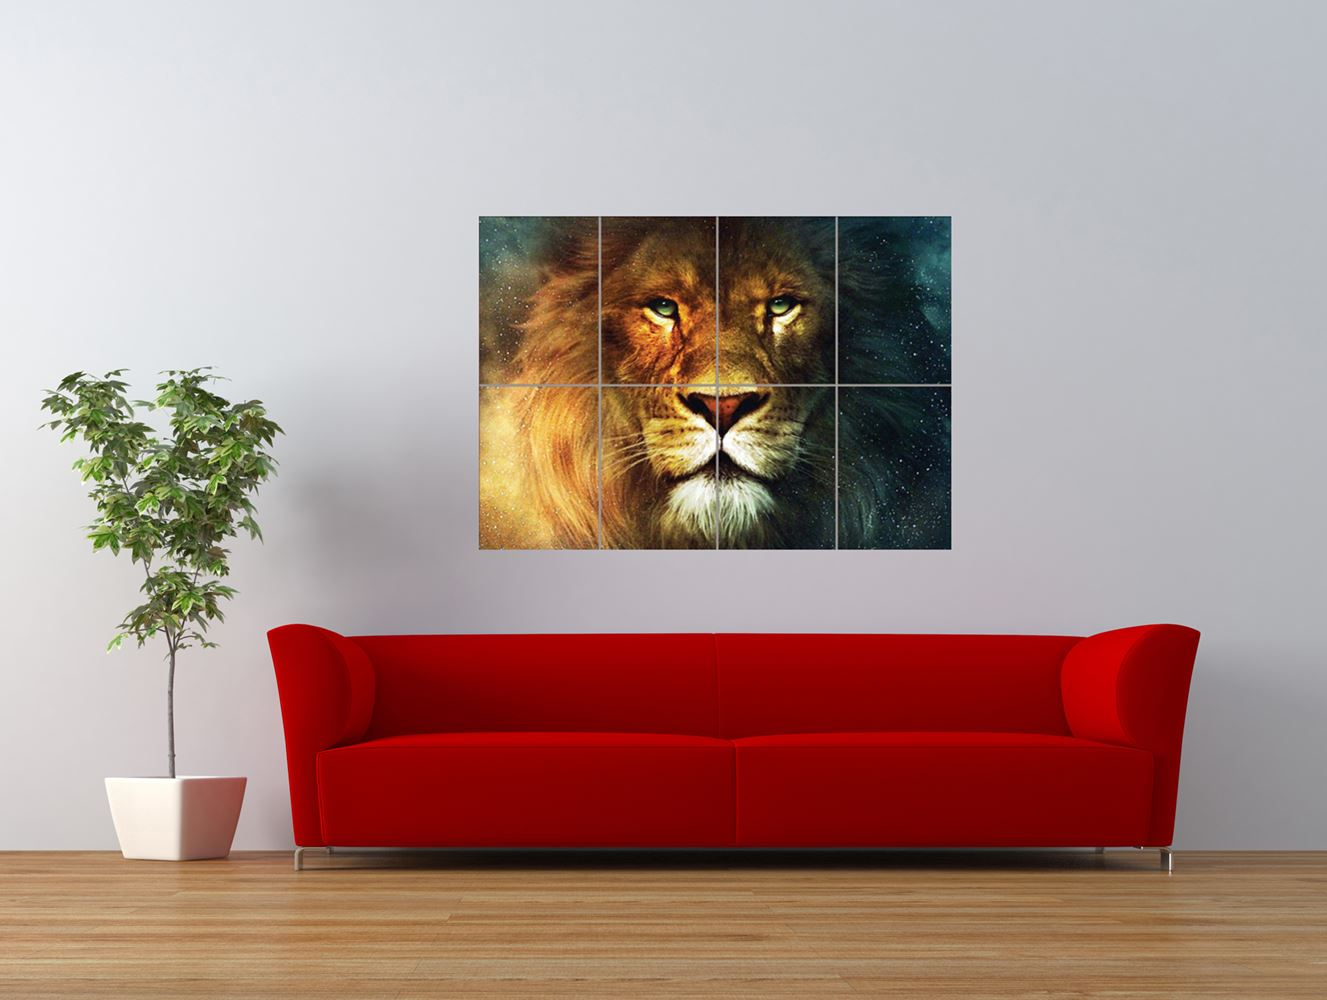 the chronicles of narnia lion aslan lewis giant art print panel poster nor0621 ebay. Black Bedroom Furniture Sets. Home Design Ideas